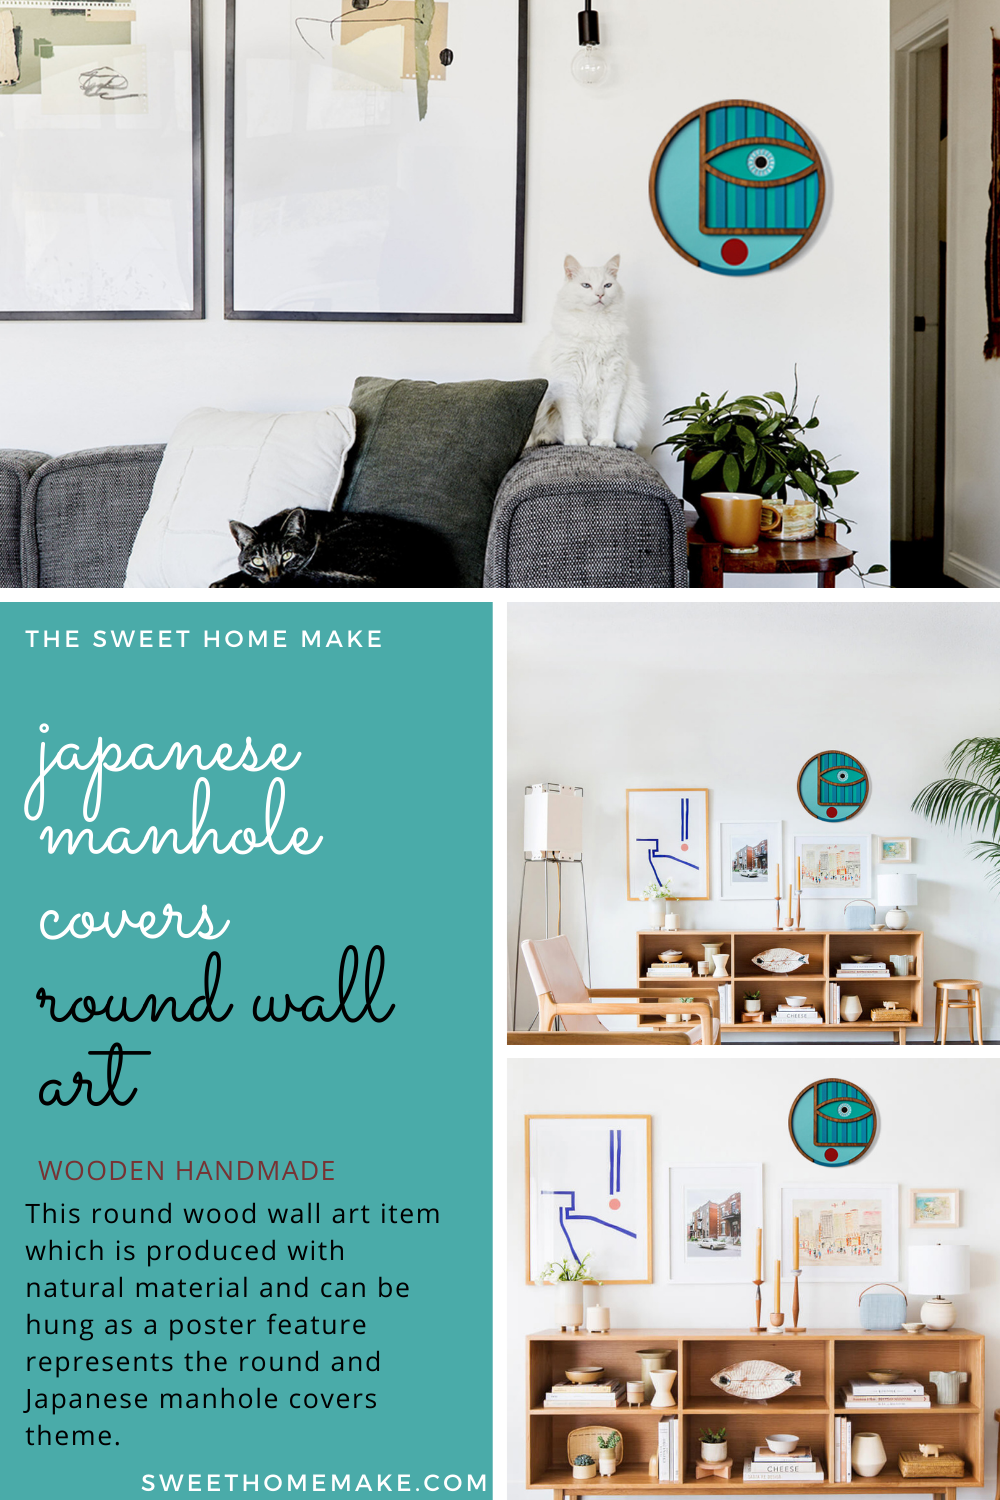 Japanese Manhole Covers To Round Wood Wall Decor By Umasqu In 2020 Round Wall Art Japanese Decor Wall Decor